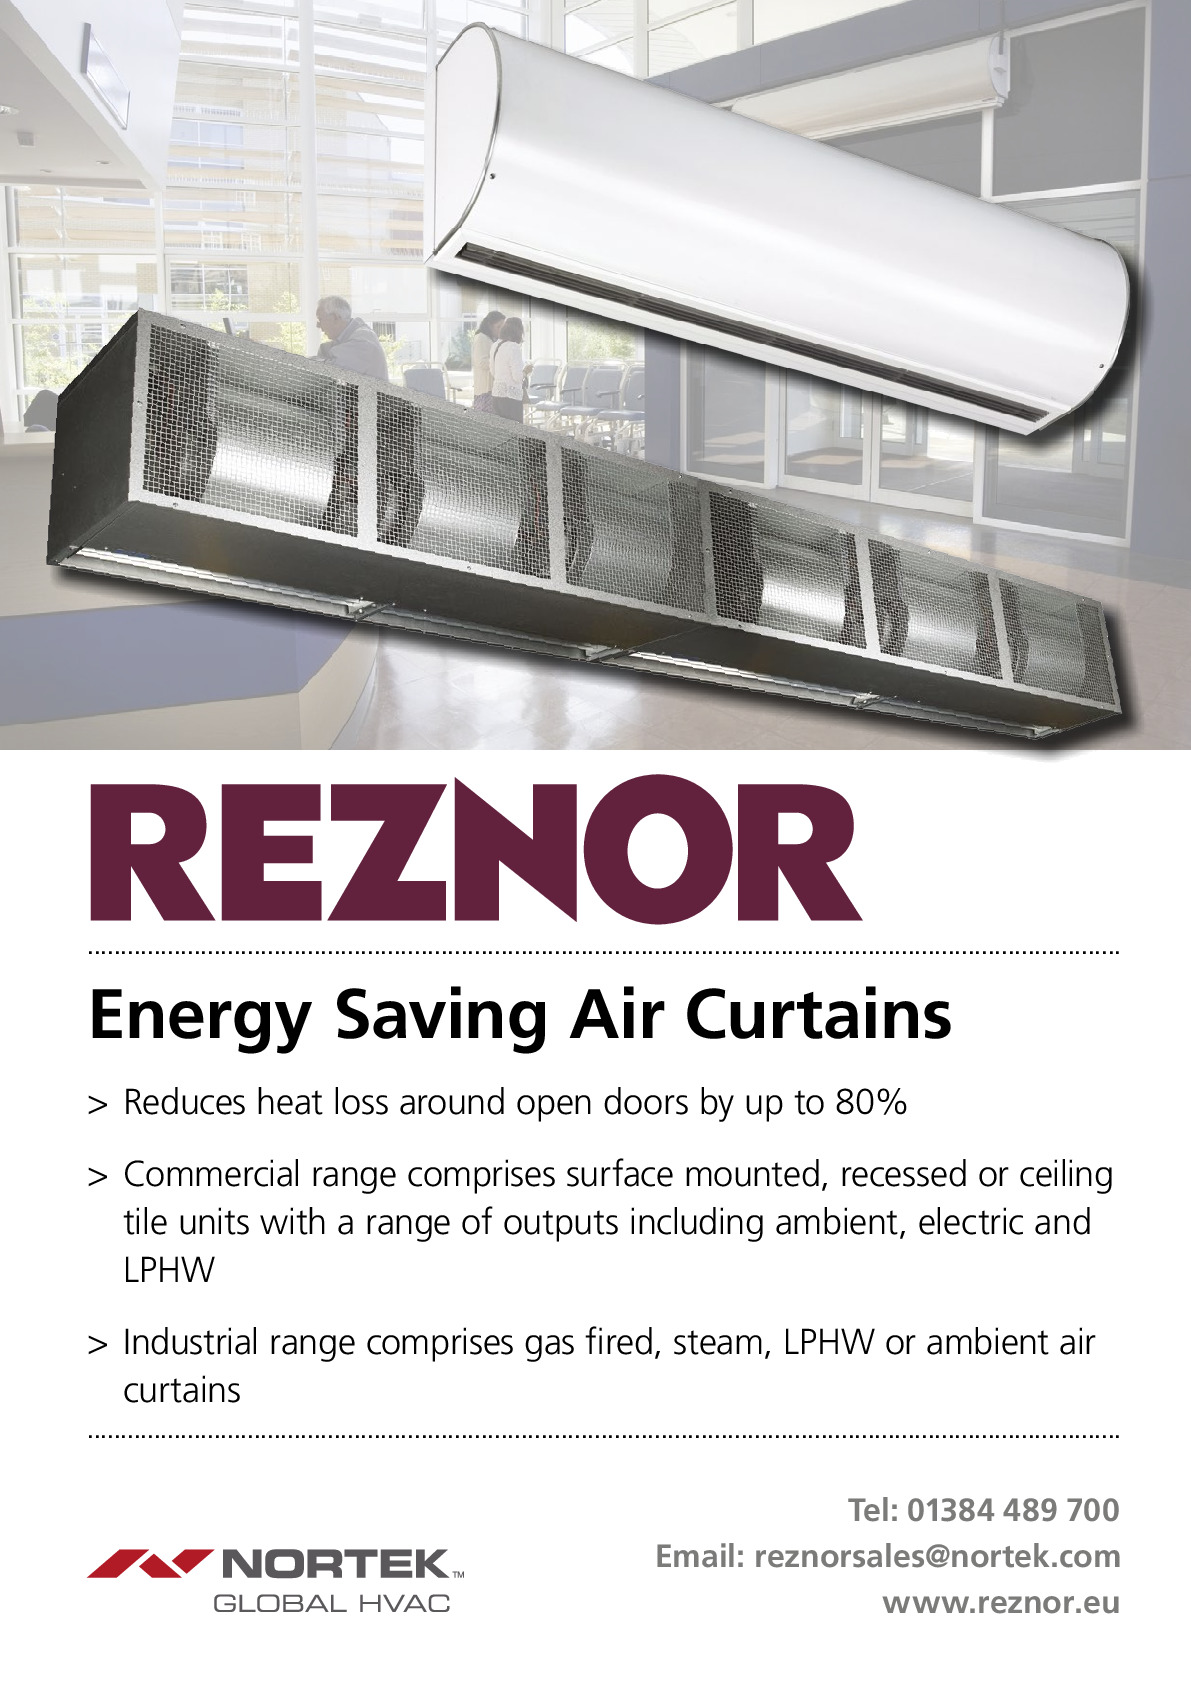 Reznor (a Division Of Nortek Global Hvac) advertisement 1 thumbnail